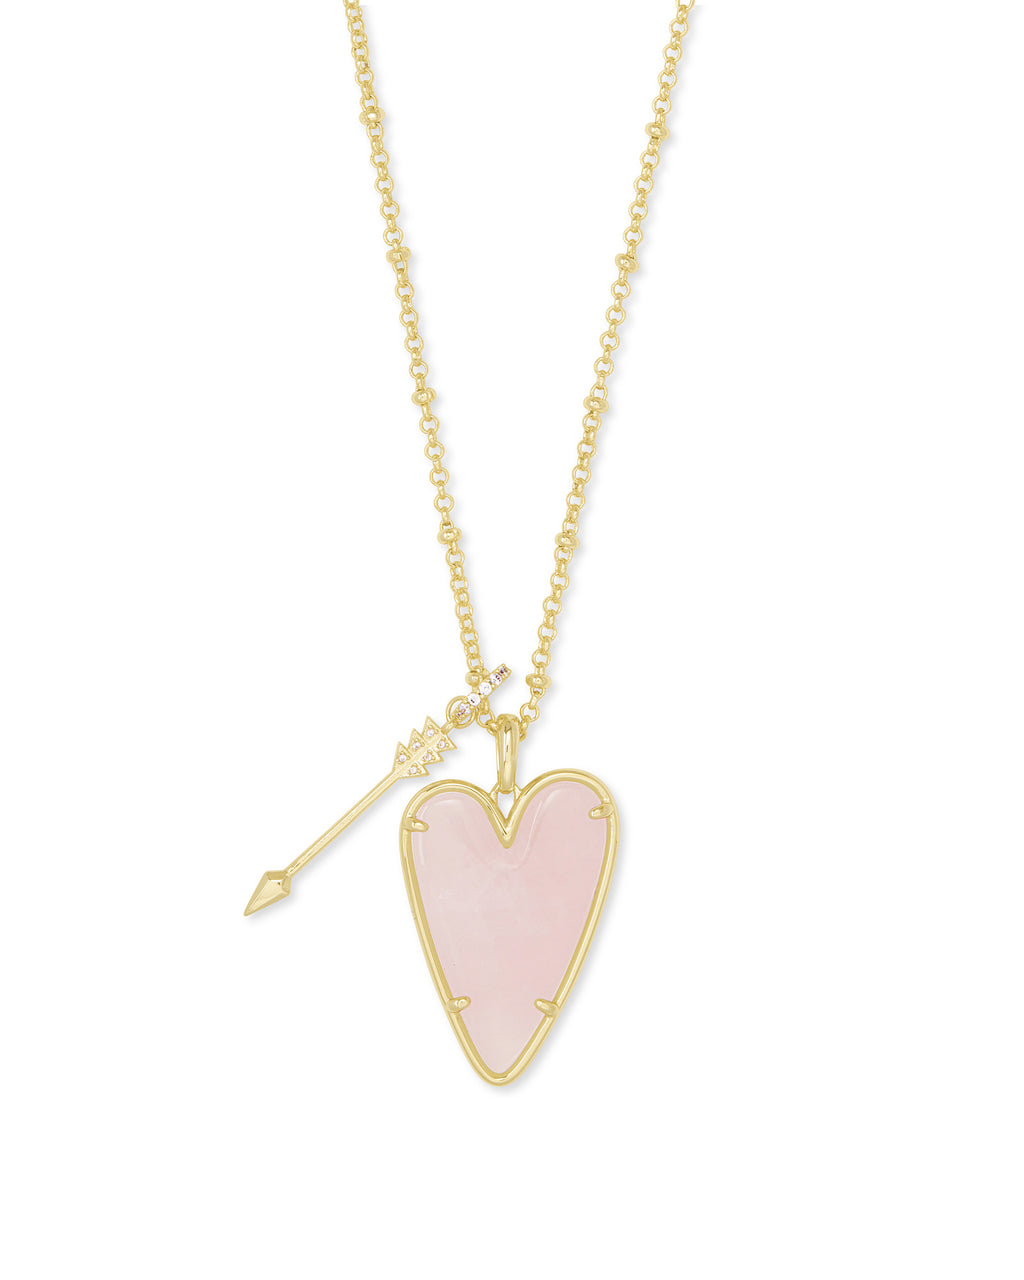 Ansley Long Pendant Necklace in Gold Rose Quartz